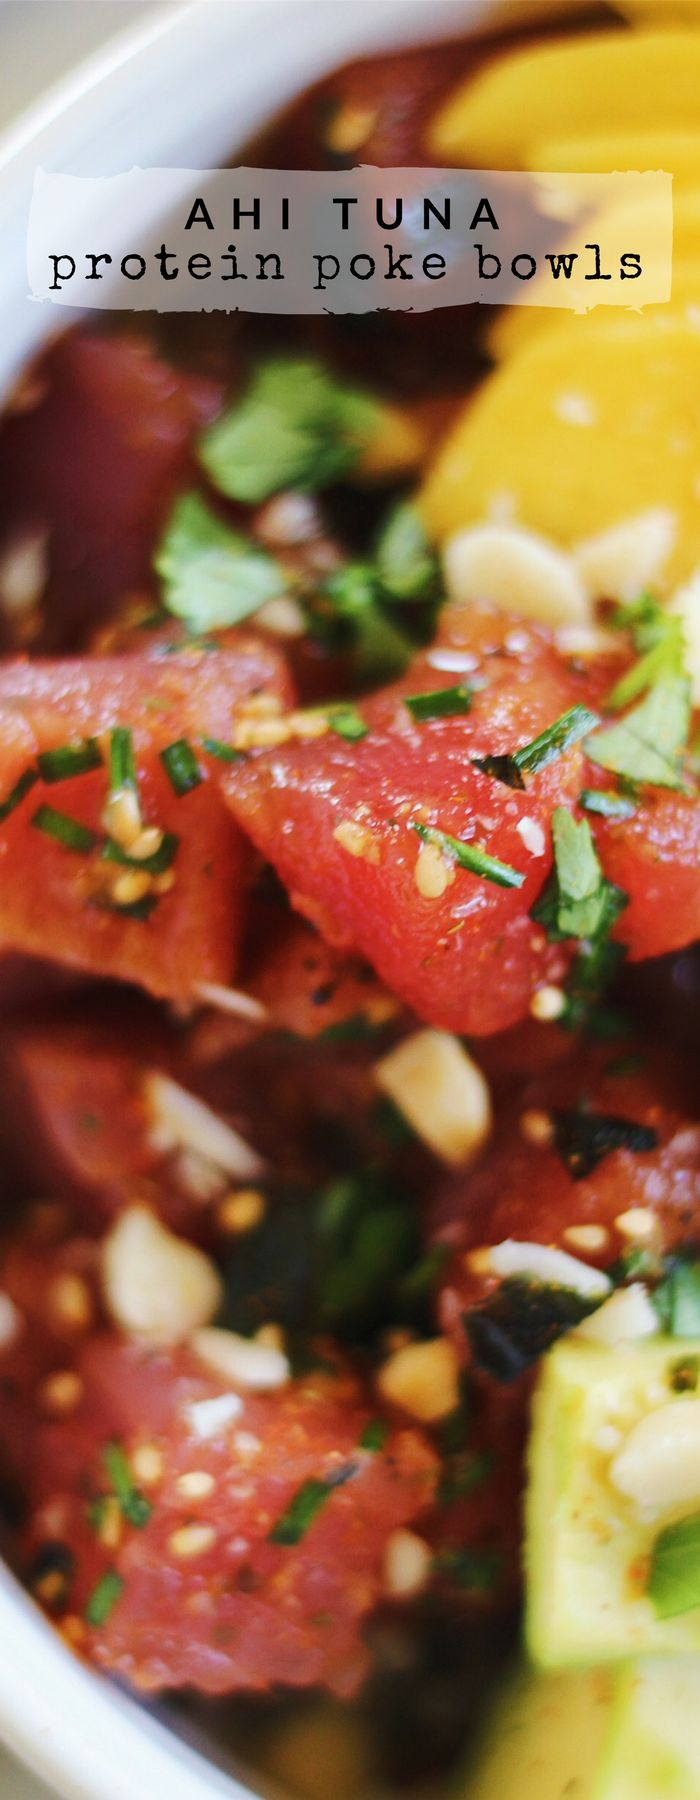 Ahi Tuna Protein Poke Bowls are full of bright, fresh umami flavors. These gluten-free bowls get an extra dose of protein thanks to an organic protein rice blend with brown jasmine rice, red quinoa, and lentils. Mahalo!